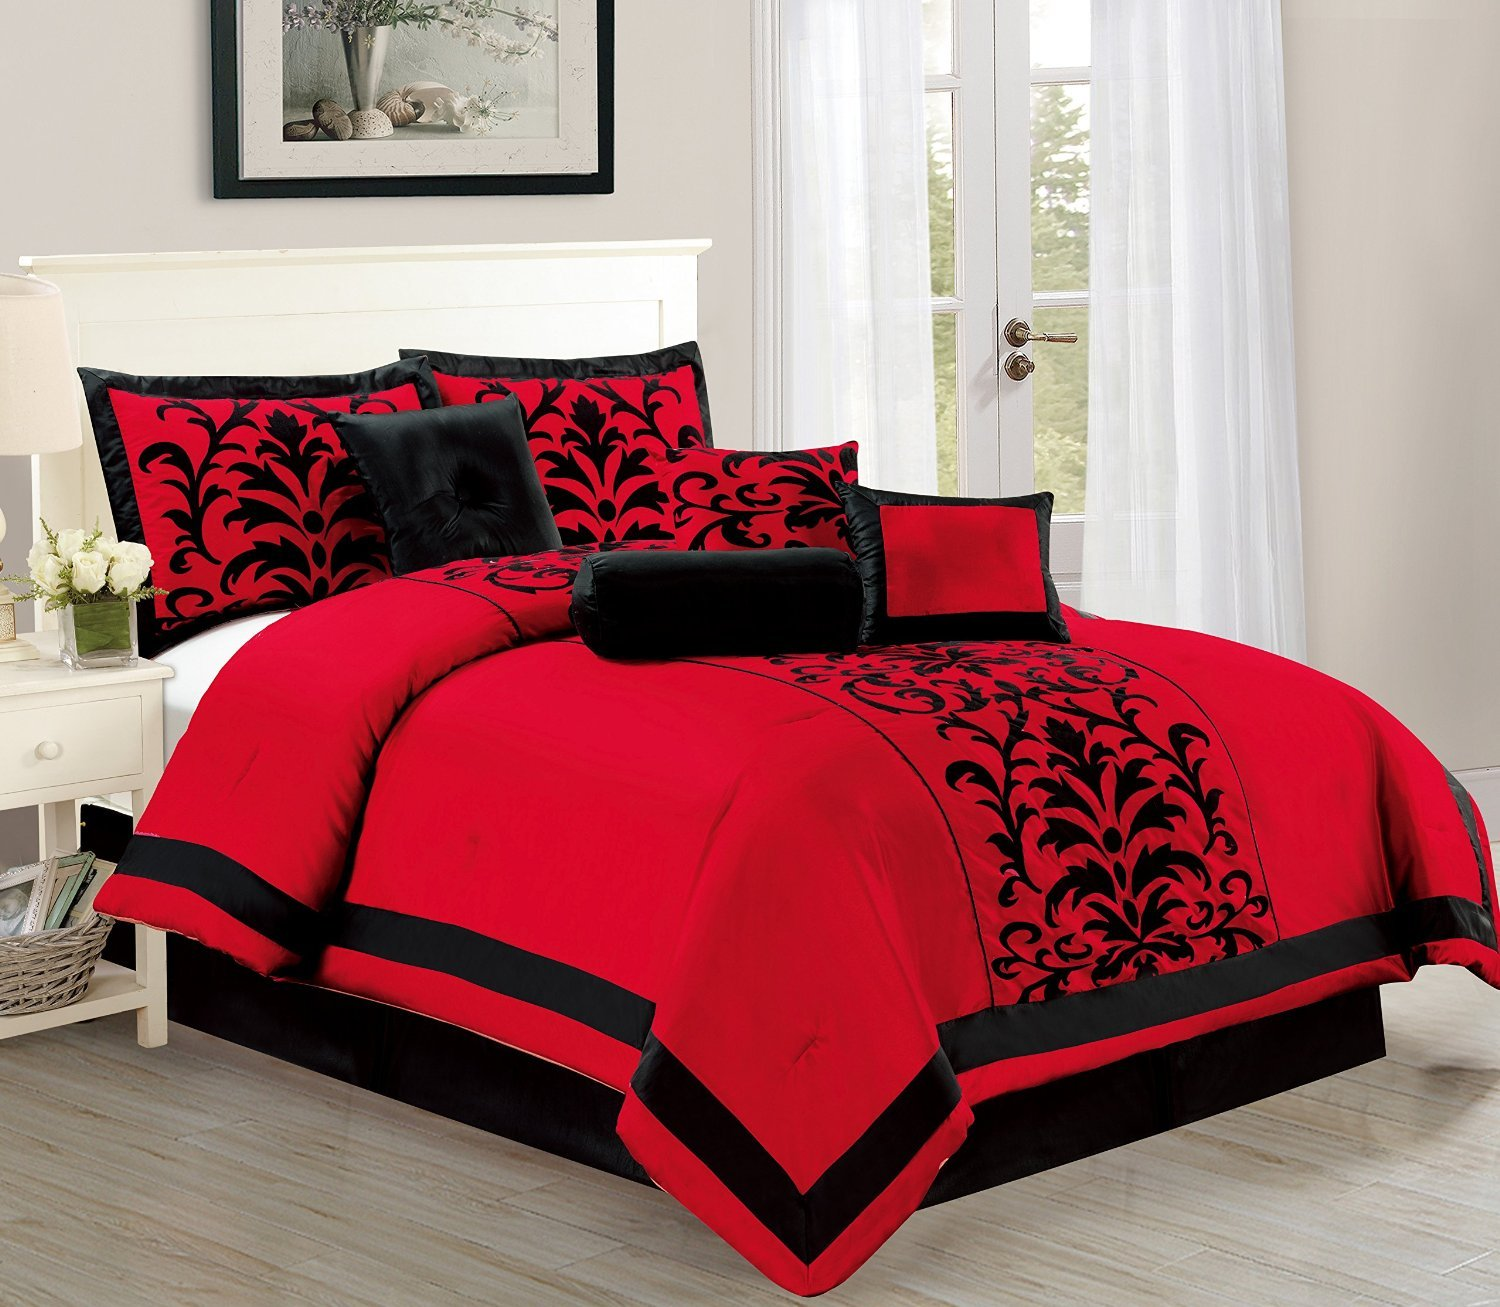 amazoncom empire home dawn 10 piece comforter set over sized bed in a bag red u0026 black new arrival 50 sale till the end of the month only queen size